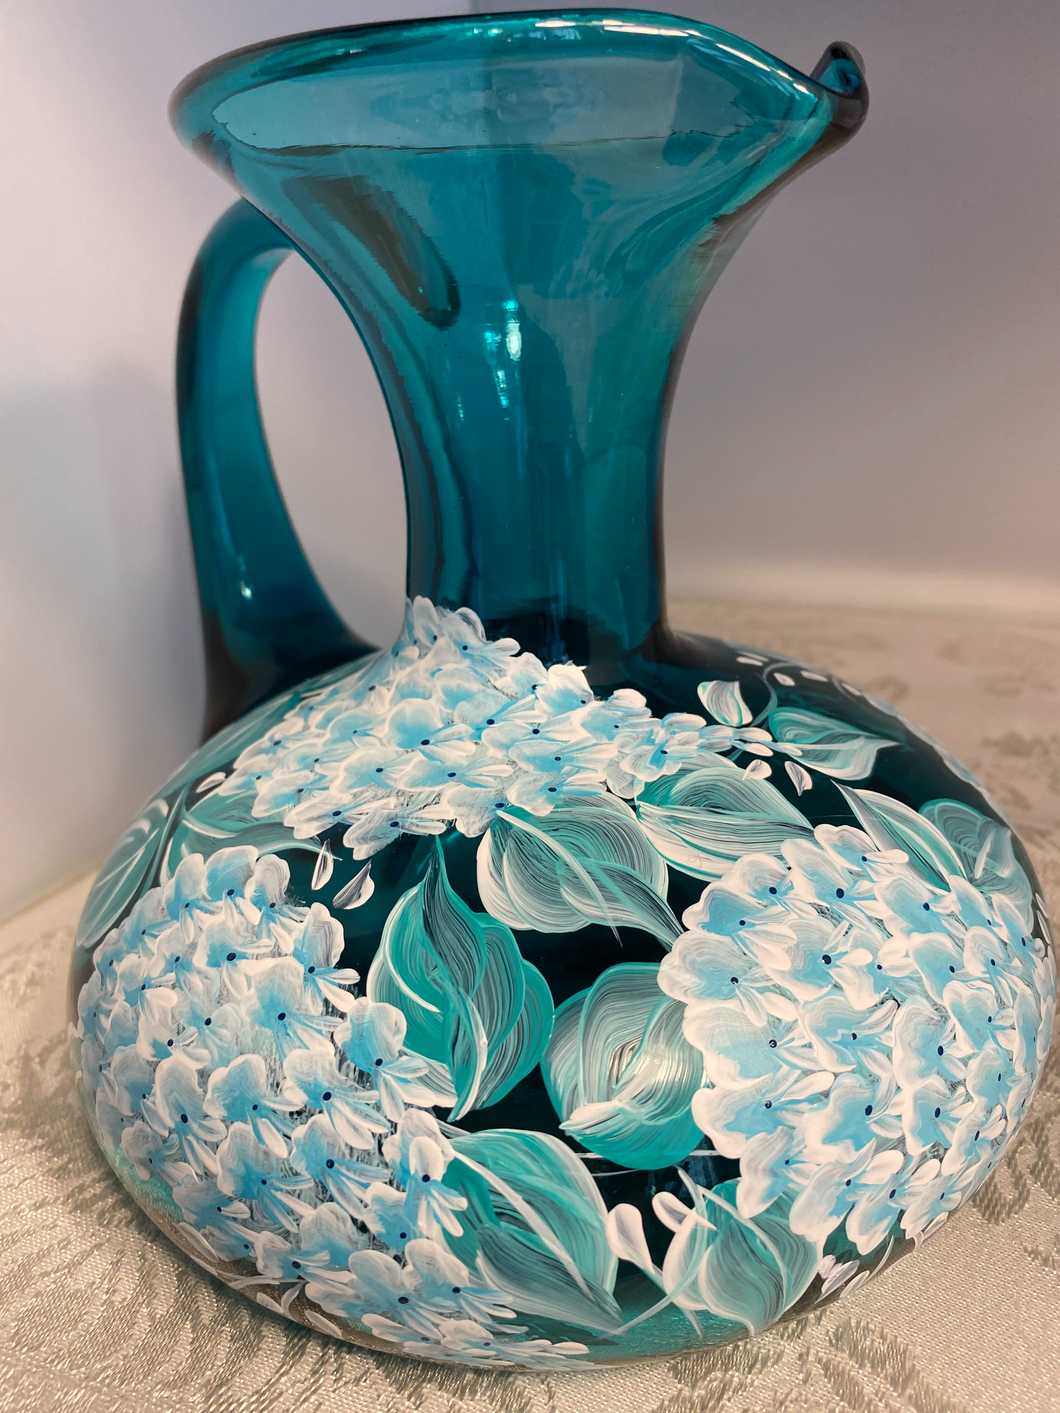 Hand Painted Aqua Glass Pitcher with White Wisteria Design. Hand Blown One Of A Kind Pitcher and Art Gift. Hand Made Glass Pitcher.